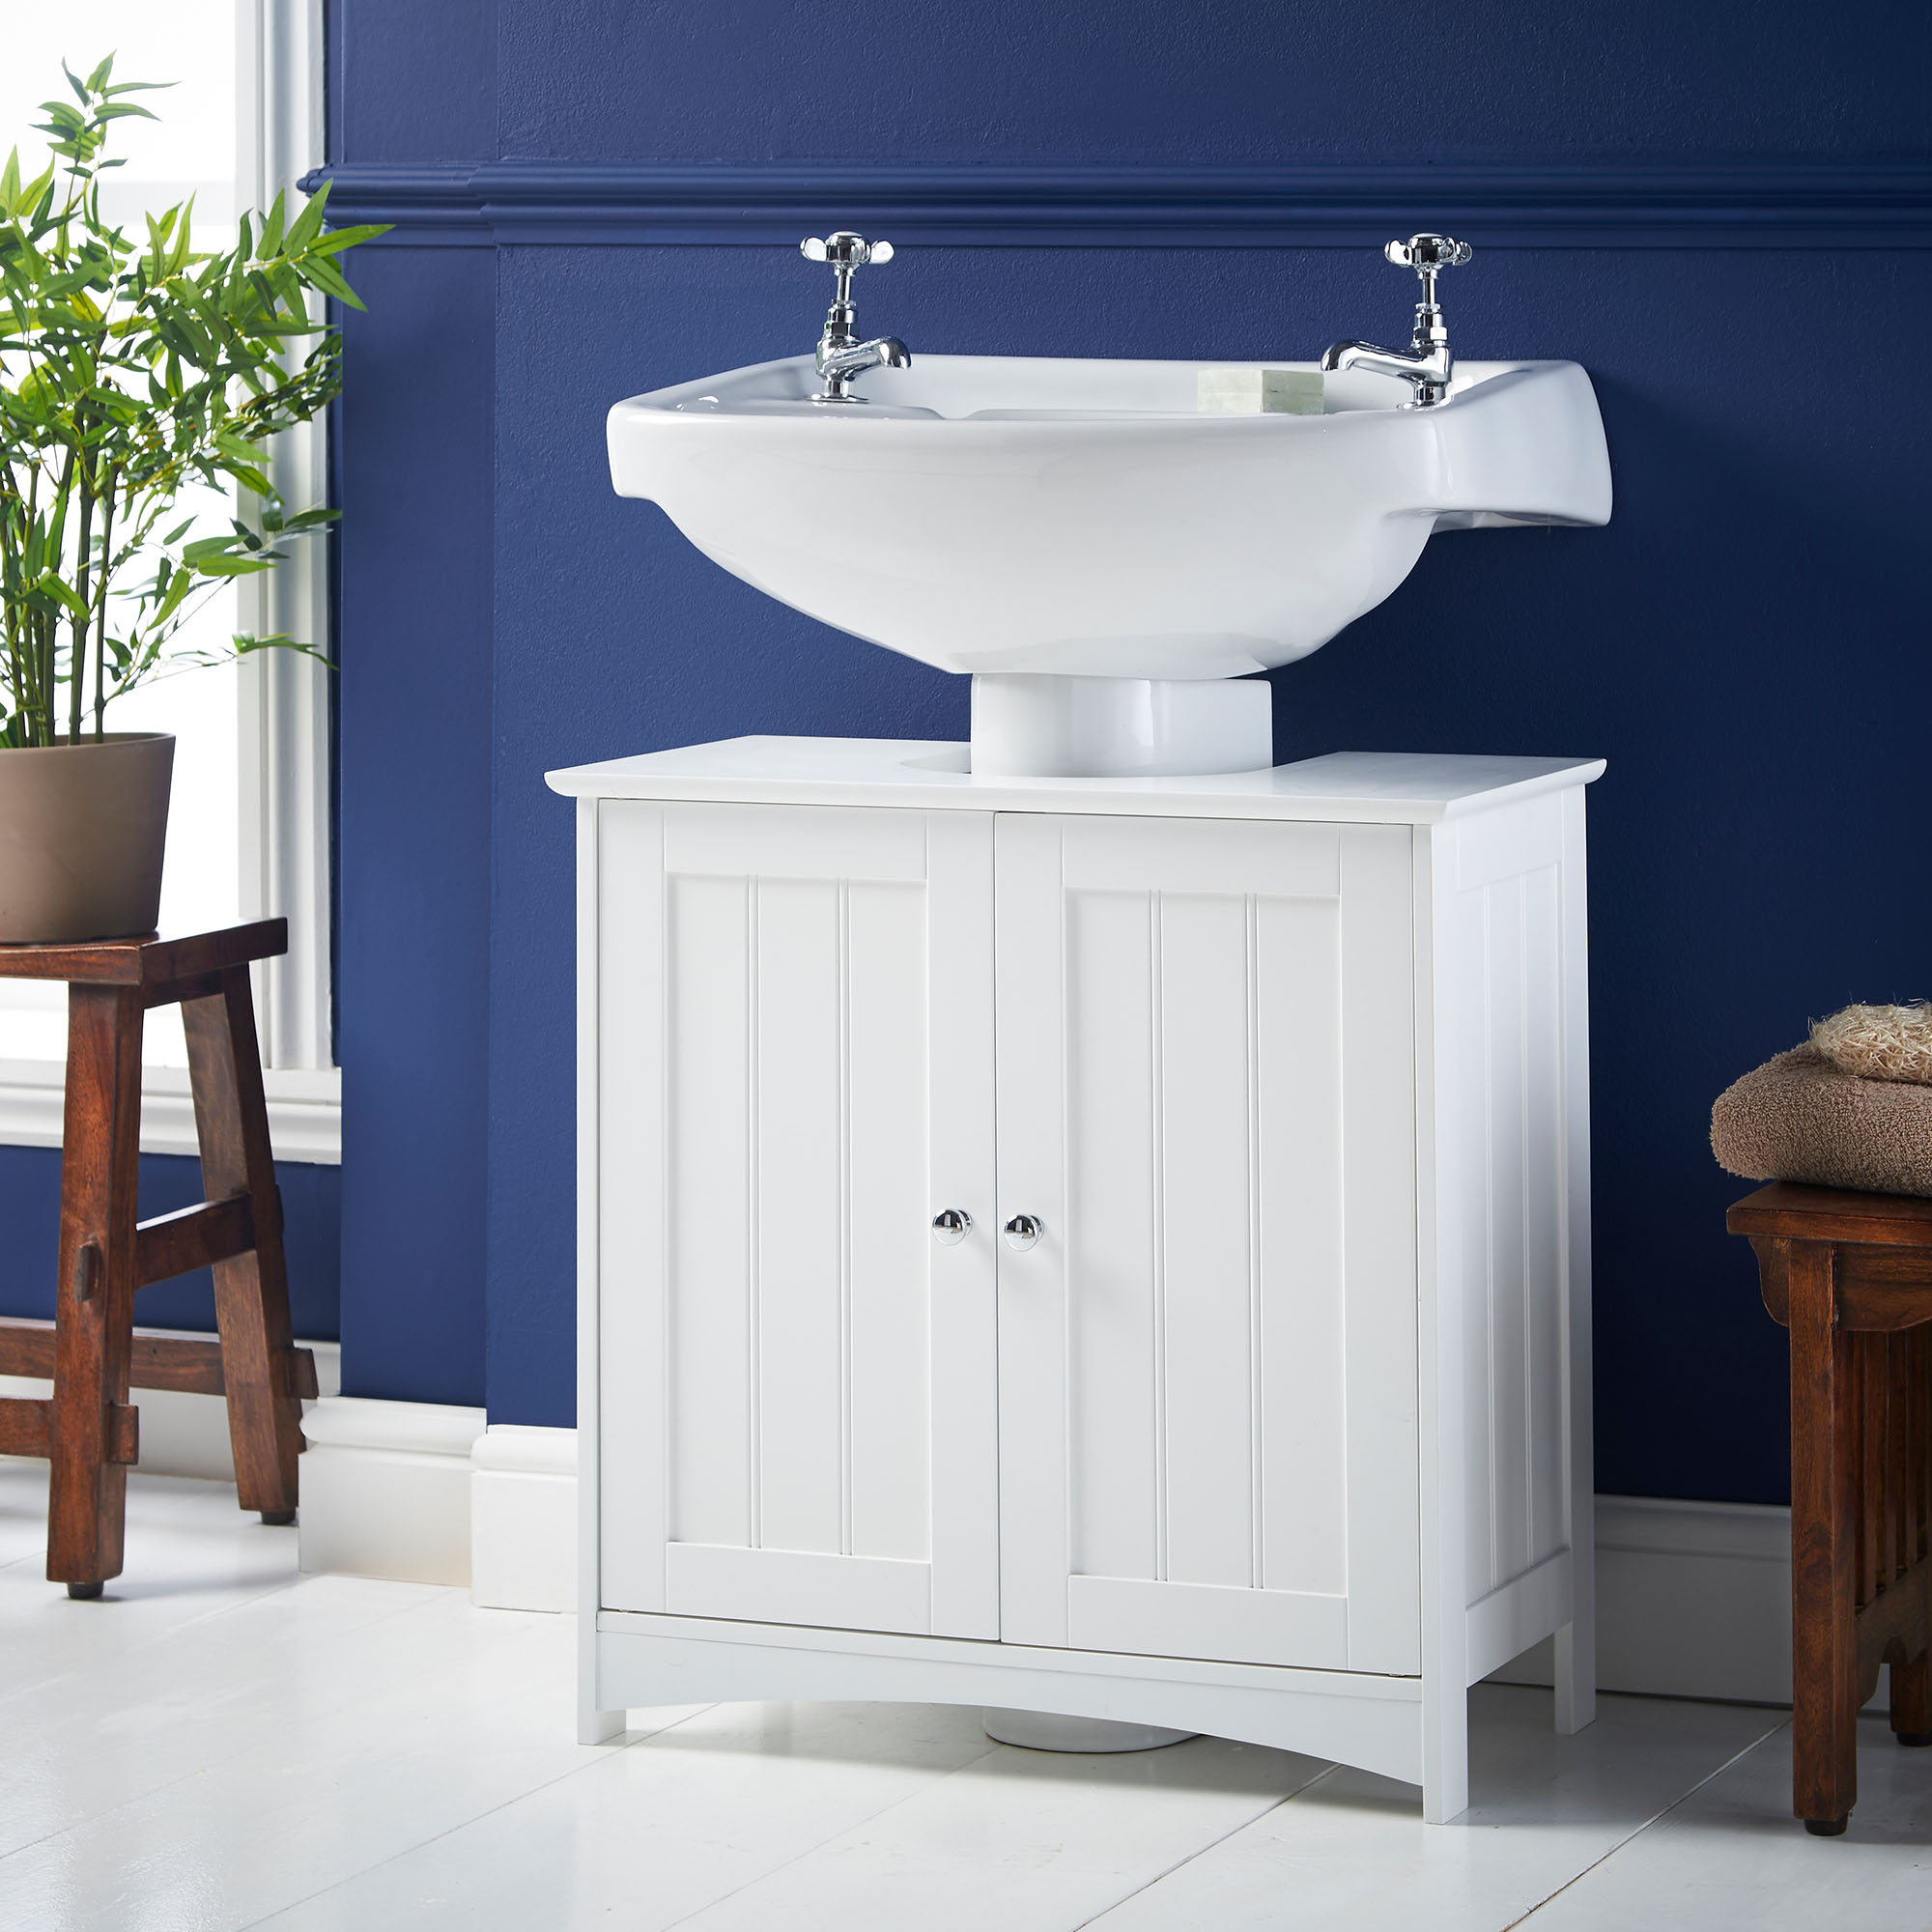 Vonhaus colonial under basin cabinet cupboard white for Colonial style bathroom vanities